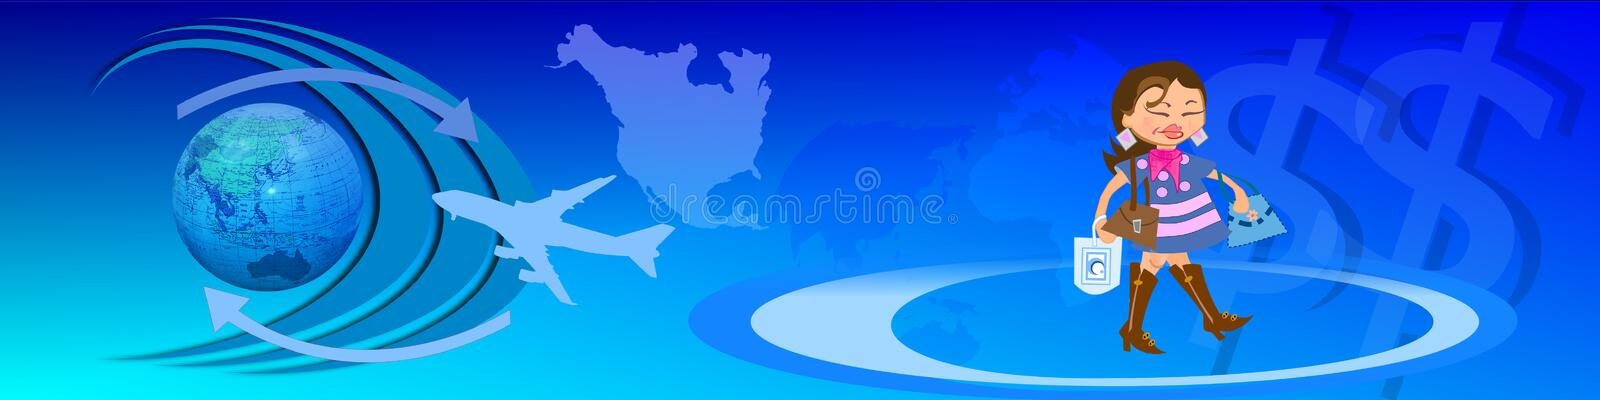 World wide traffic and e-commerce. This header / banner shows symbols like the globe, binary codes, the USD symbol and the shopping lady. All together this royalty free illustration